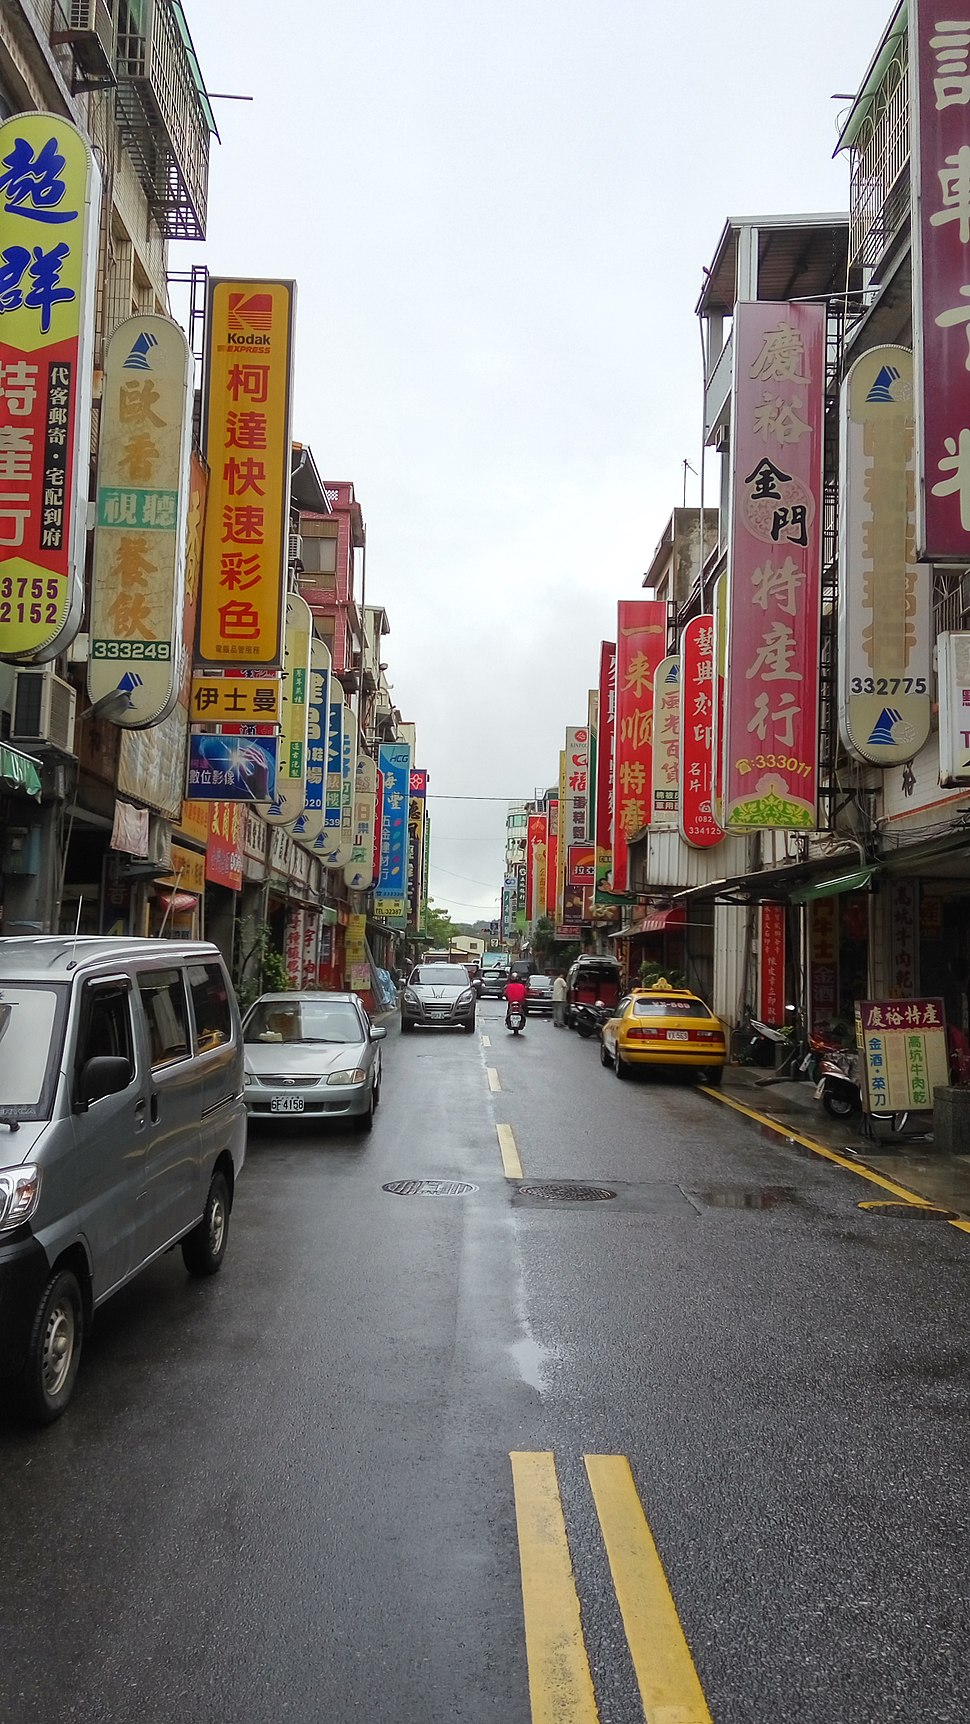 Commercial district of Kinmen.jpg